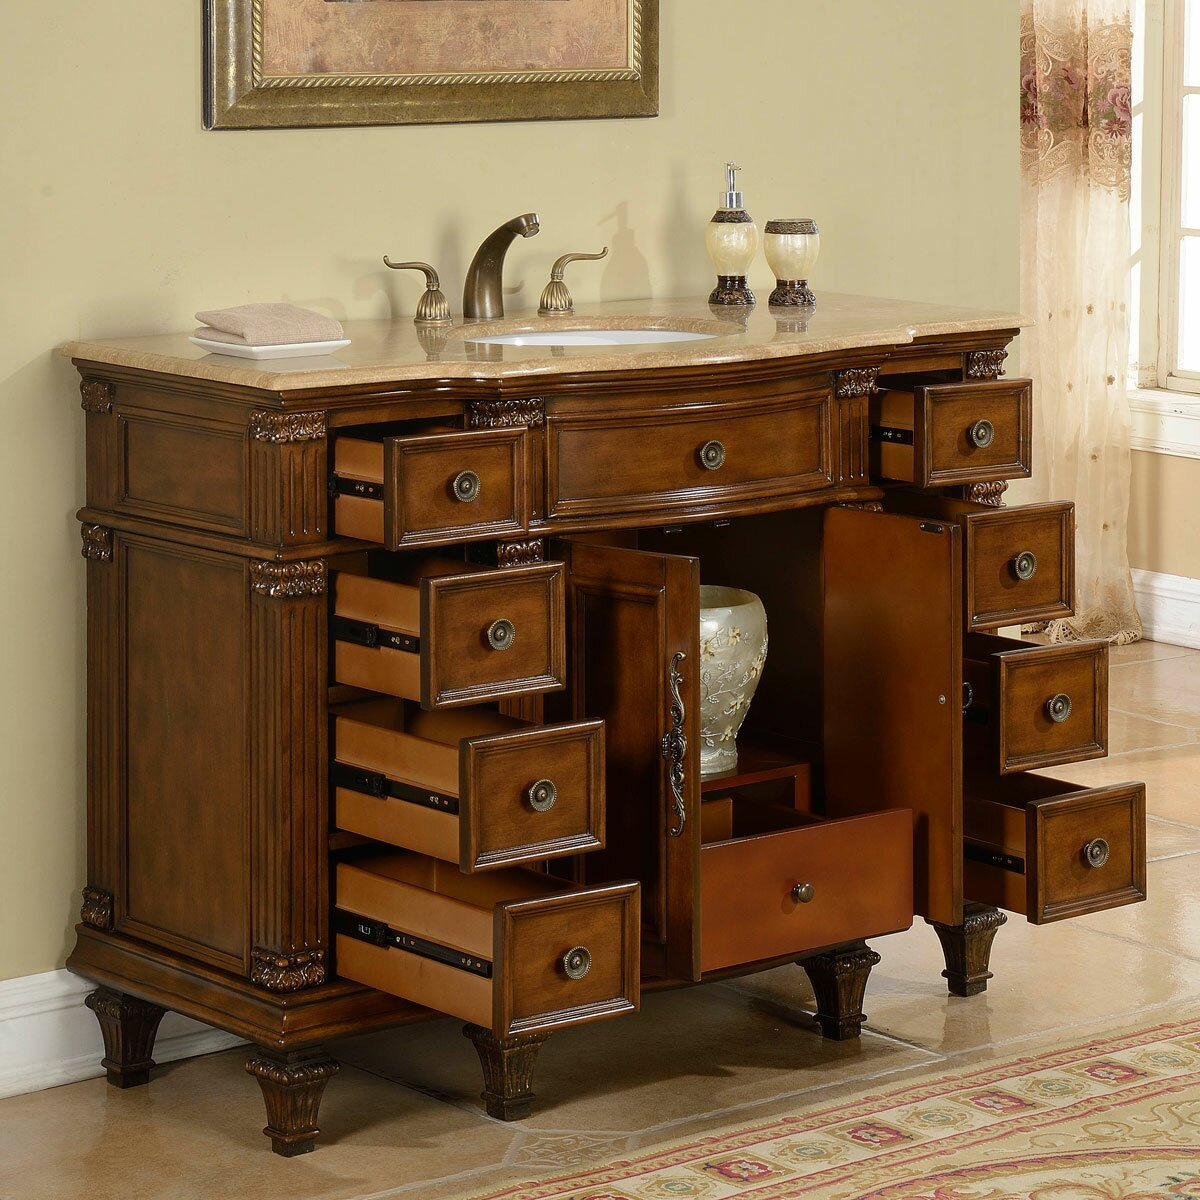 Silkroad Exclusive 48 Single Sink Cabinet Bathroom Vanity